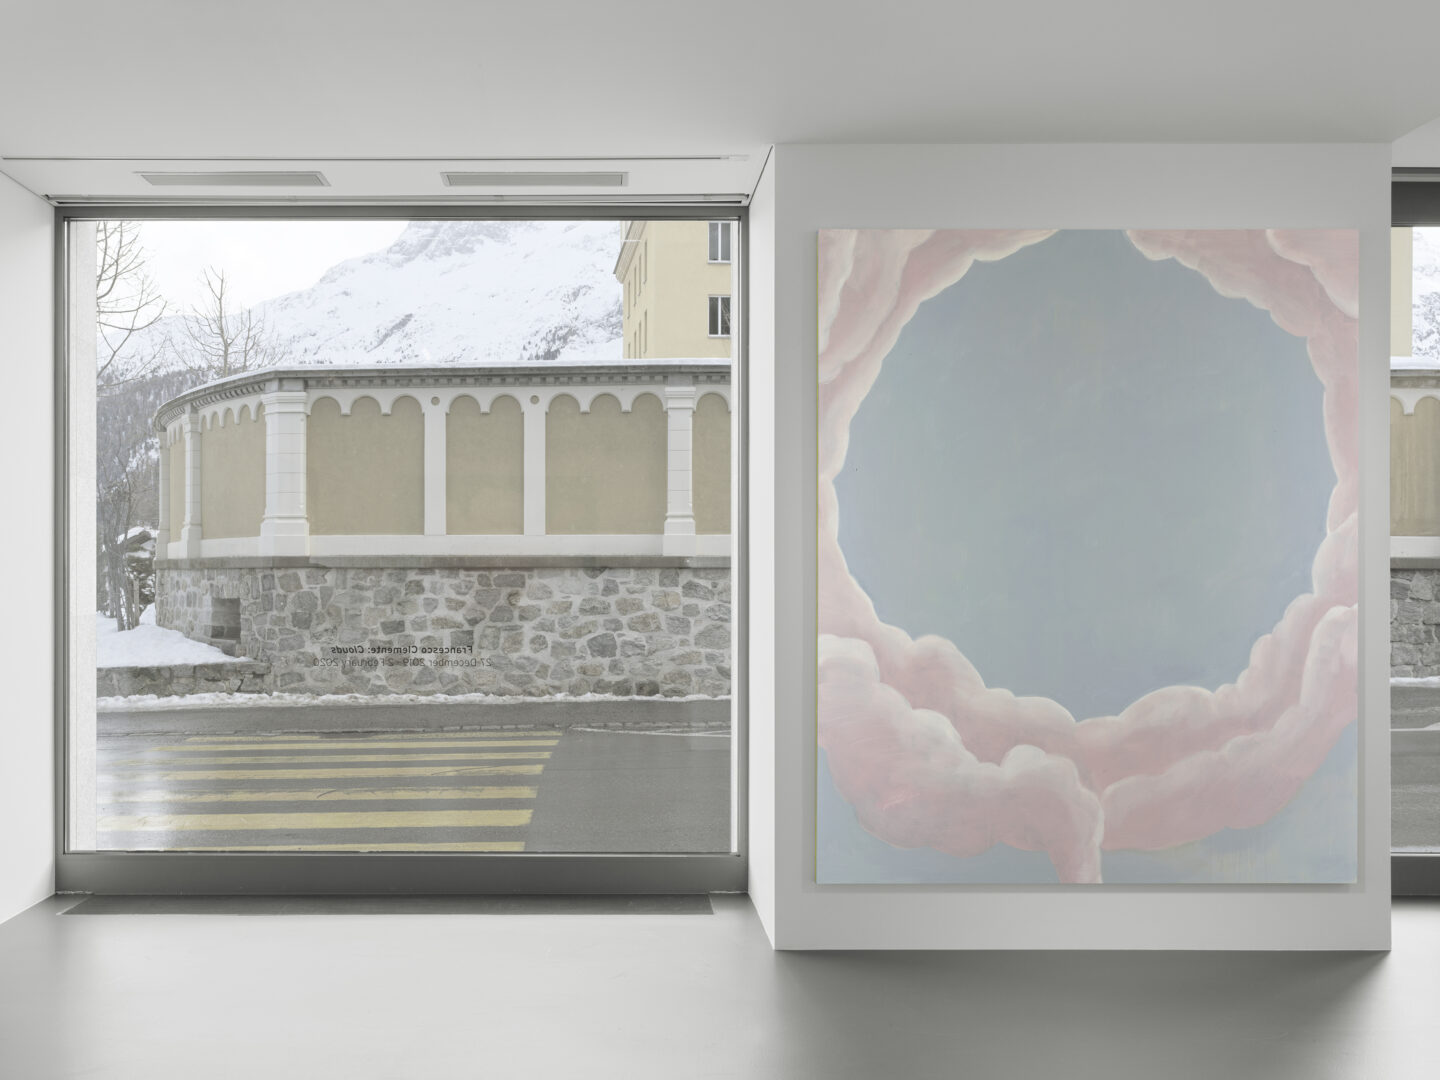 Exhibition View Francesco Clemente Soloshow «Clouds; view on Clouds II, 2018» at Vito Schnabel Gallery, St. Moritz, 2019 / © Francesco Clemente / Photo by Stefan Altenburger / Courtesy: the artist and Vito Schnabel Gallery